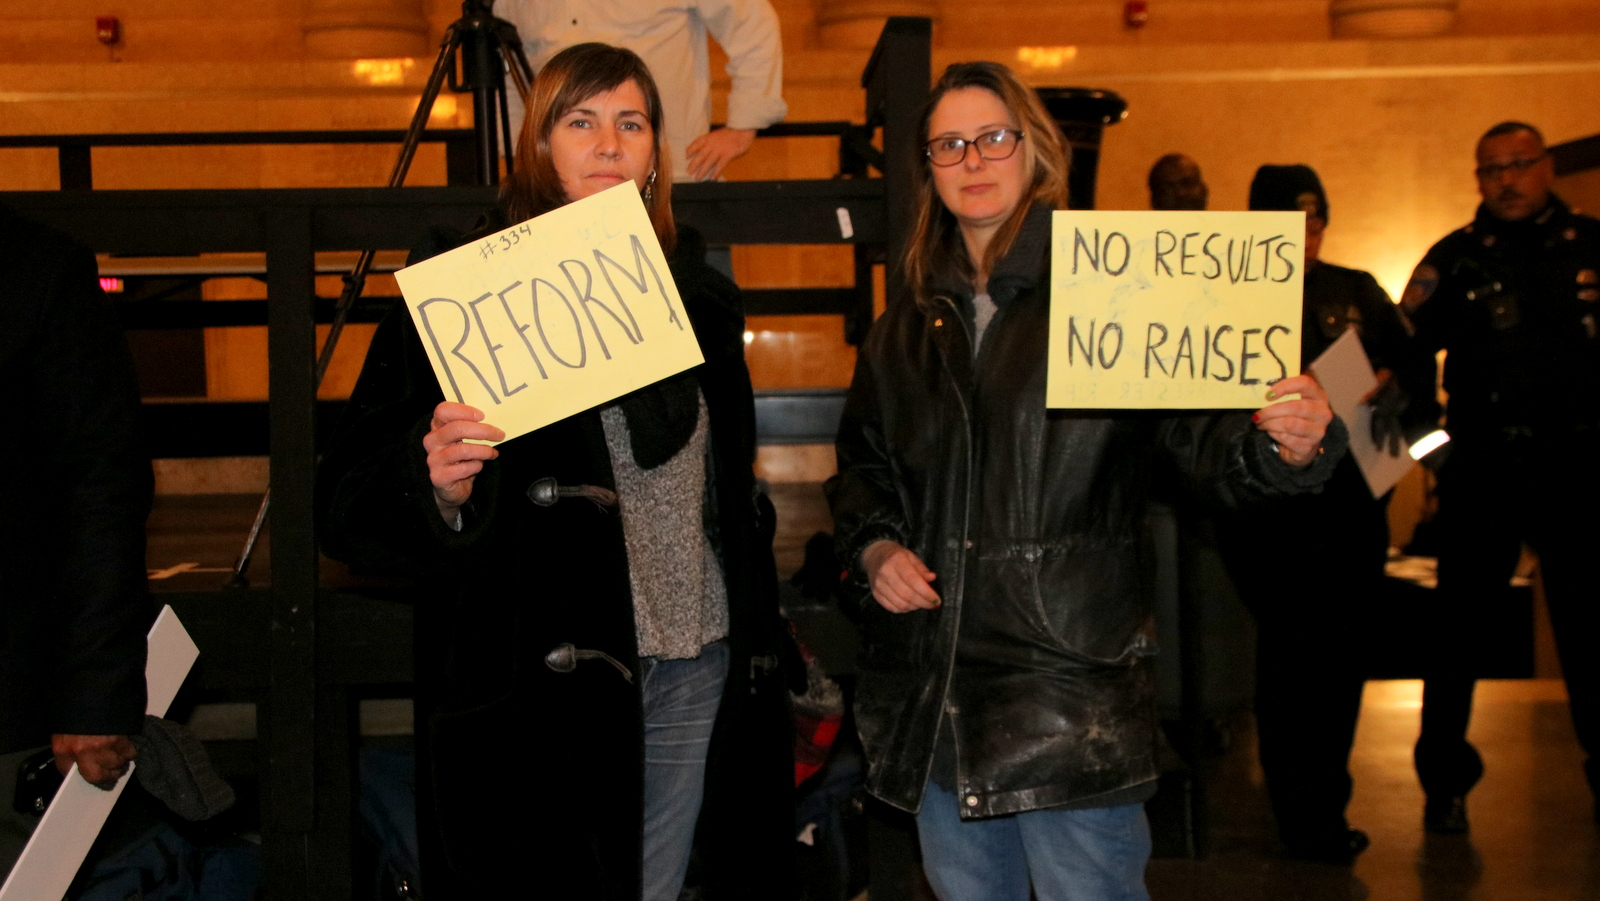 These participants brought their own signs, one of which referred to the raises the mayor and city council members will be receiving come January 1. (Fern Shen)